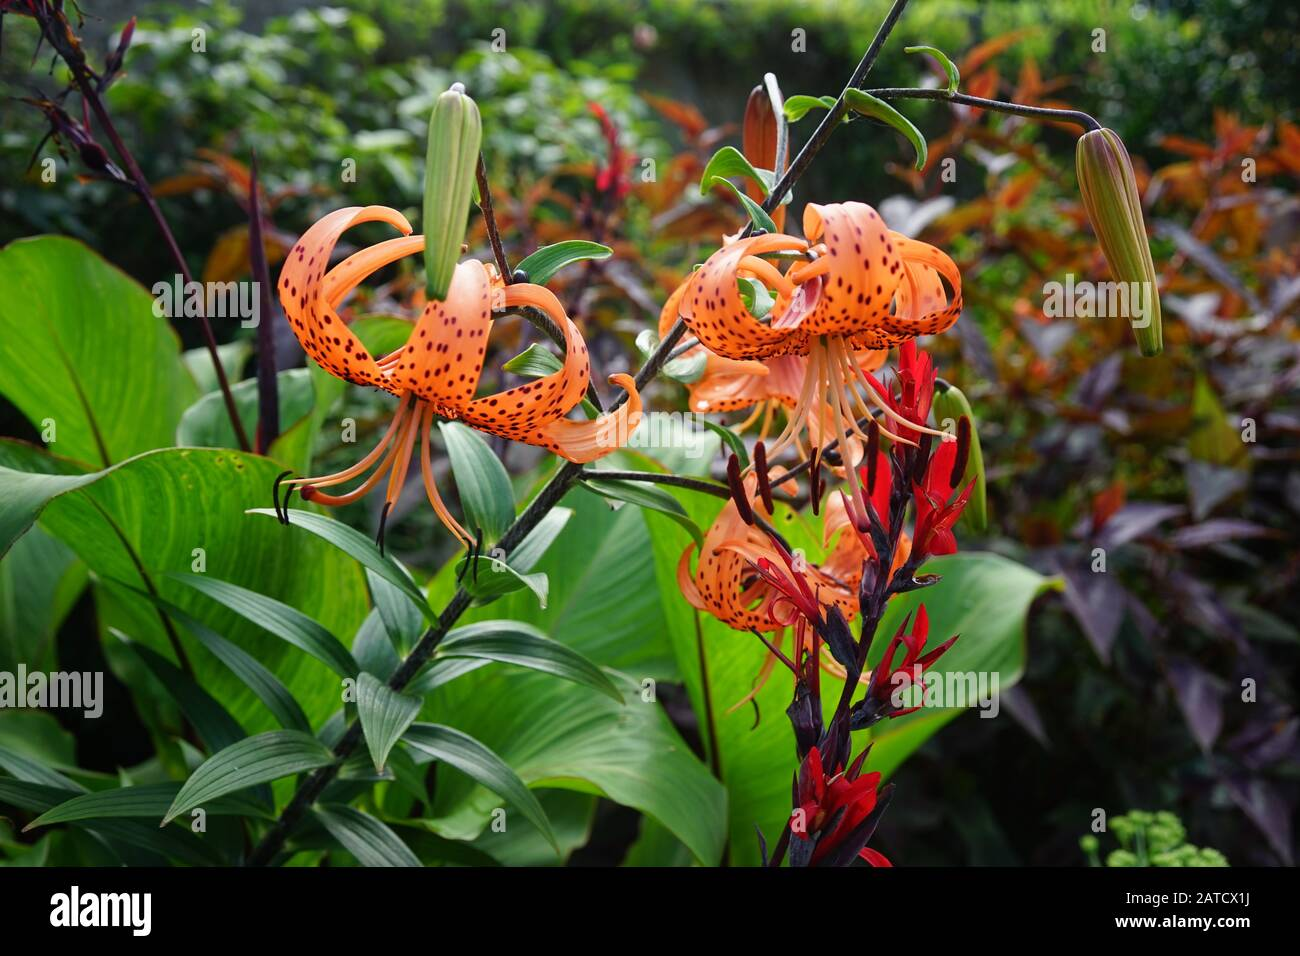 A Beautiful Shot Of Tiger Lilies In The Forest Surrounded By